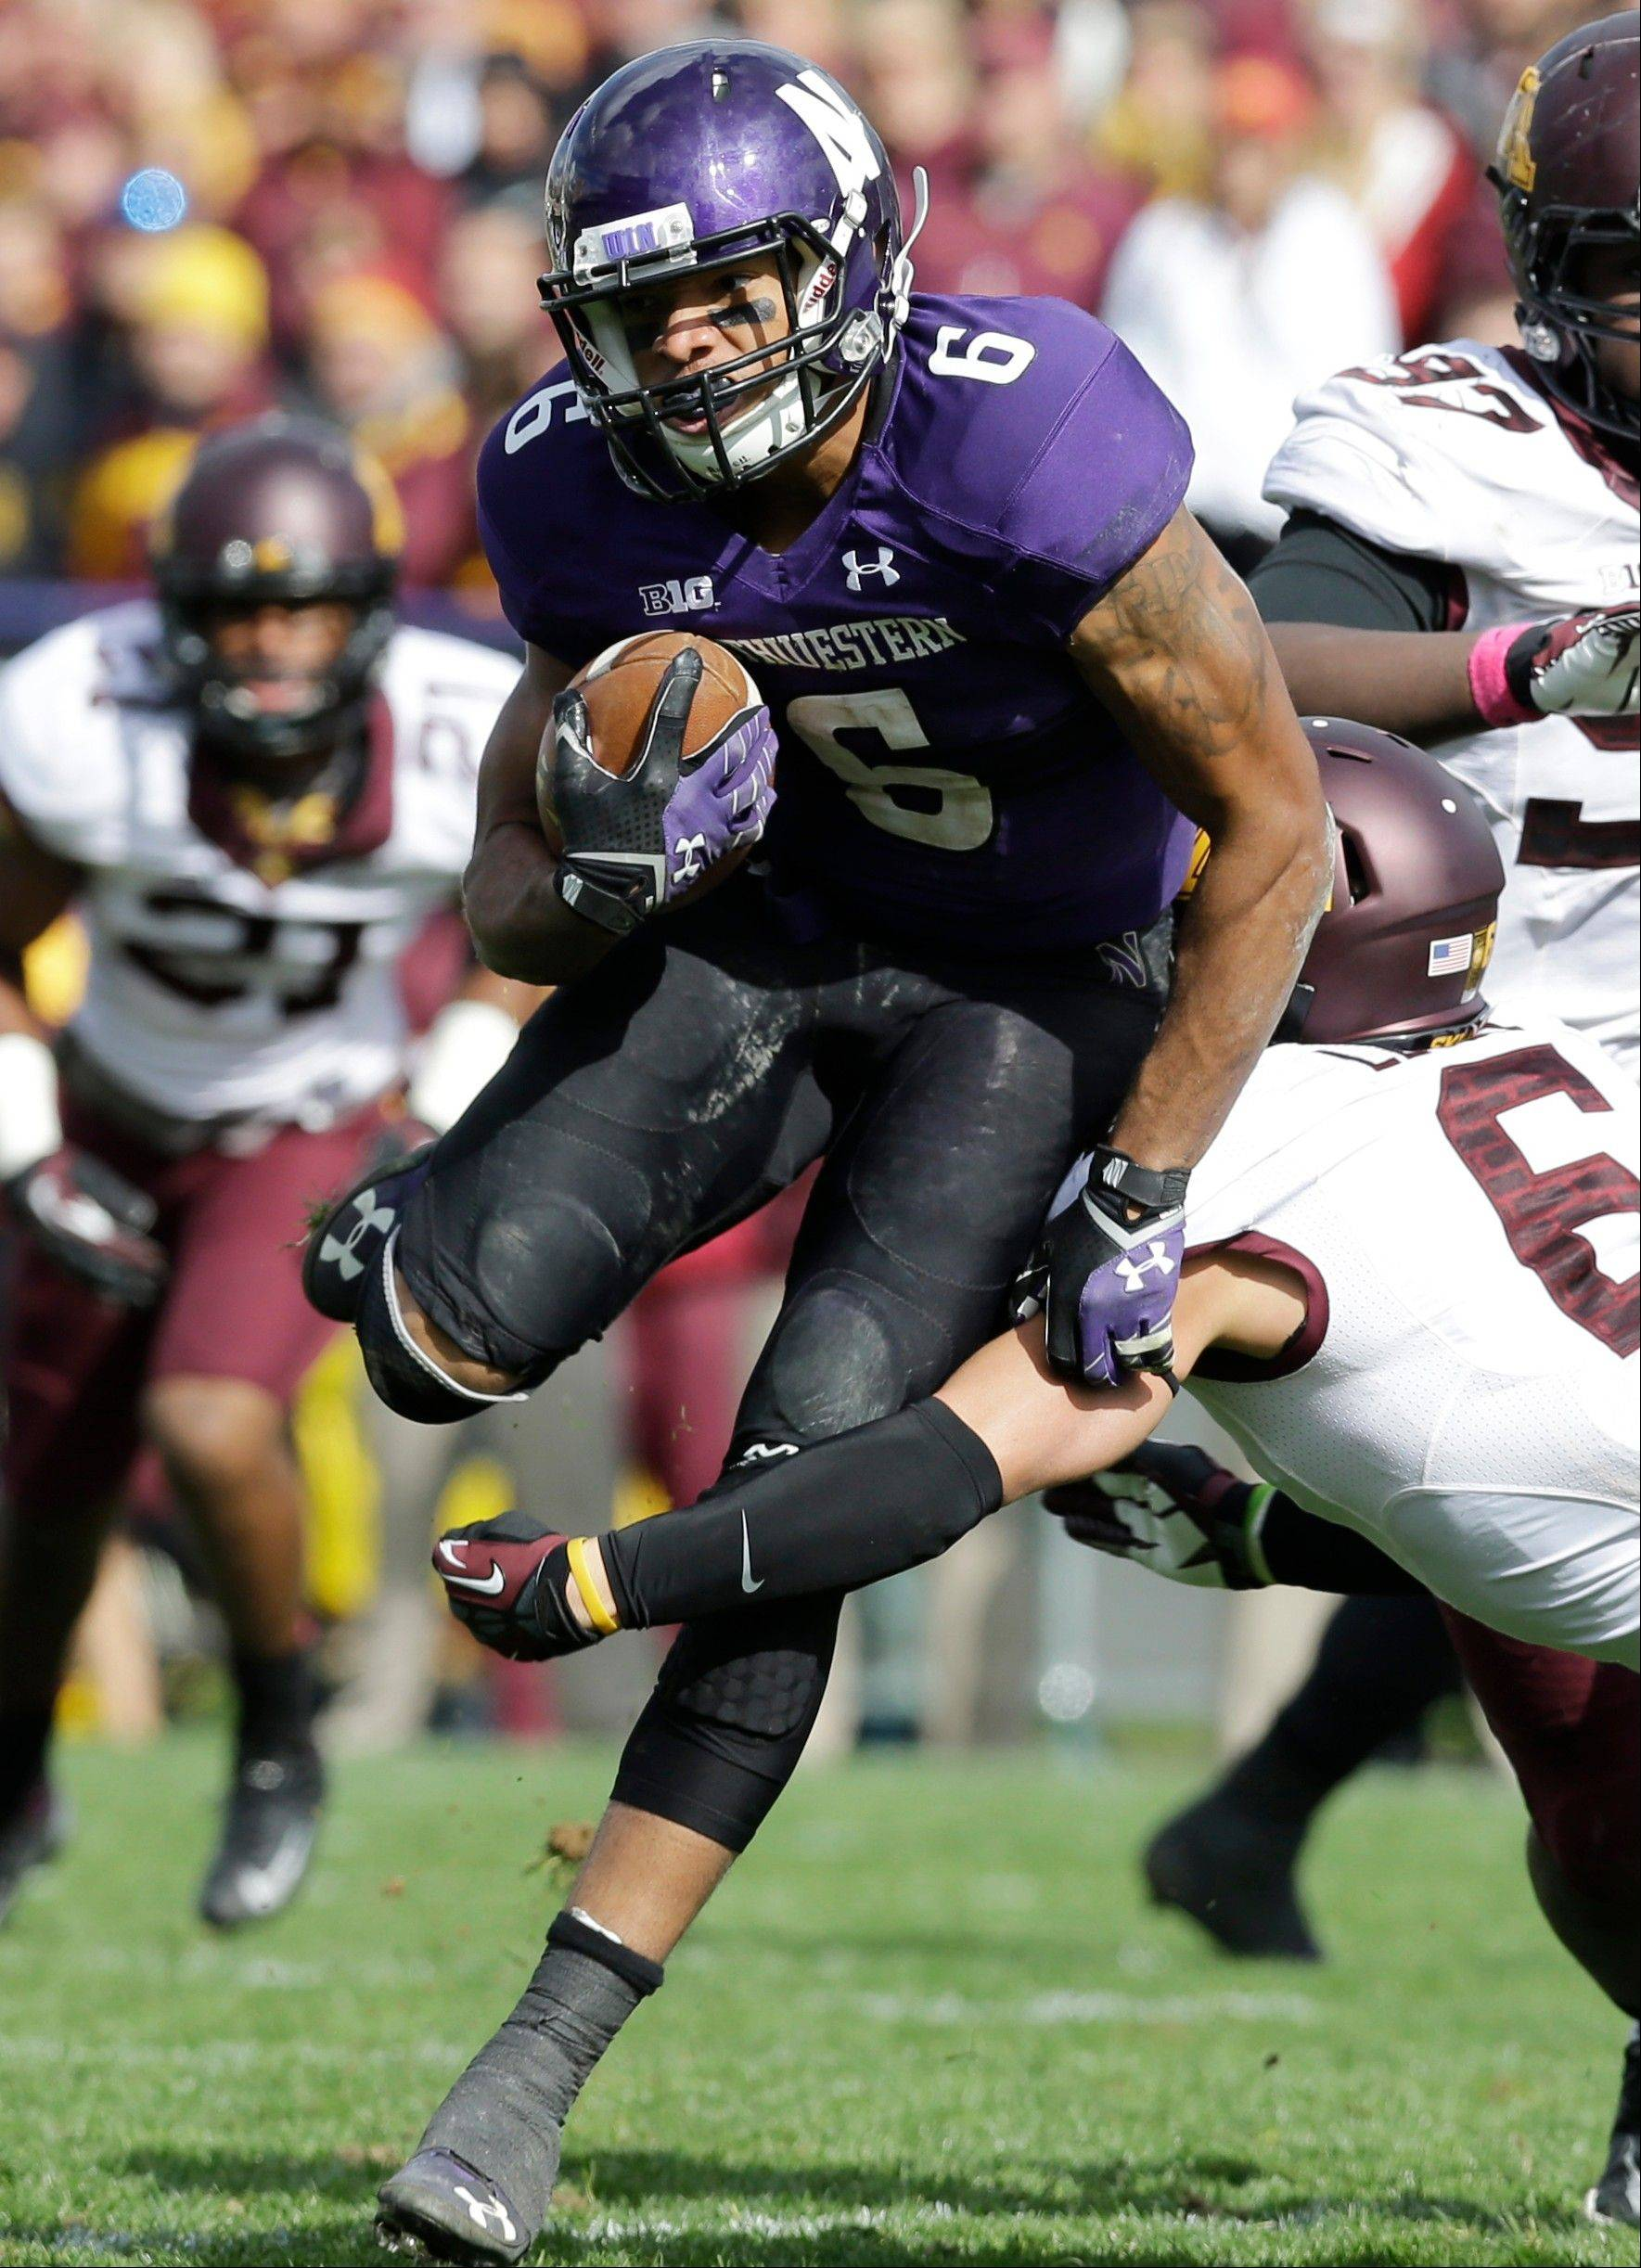 Northwestern wide receiver Tony Jones is tackled by Minnesota linebacker Damien Wilson during the second half last Saturday in Evanston. Northwestern has won four of the last five games against Iowa.